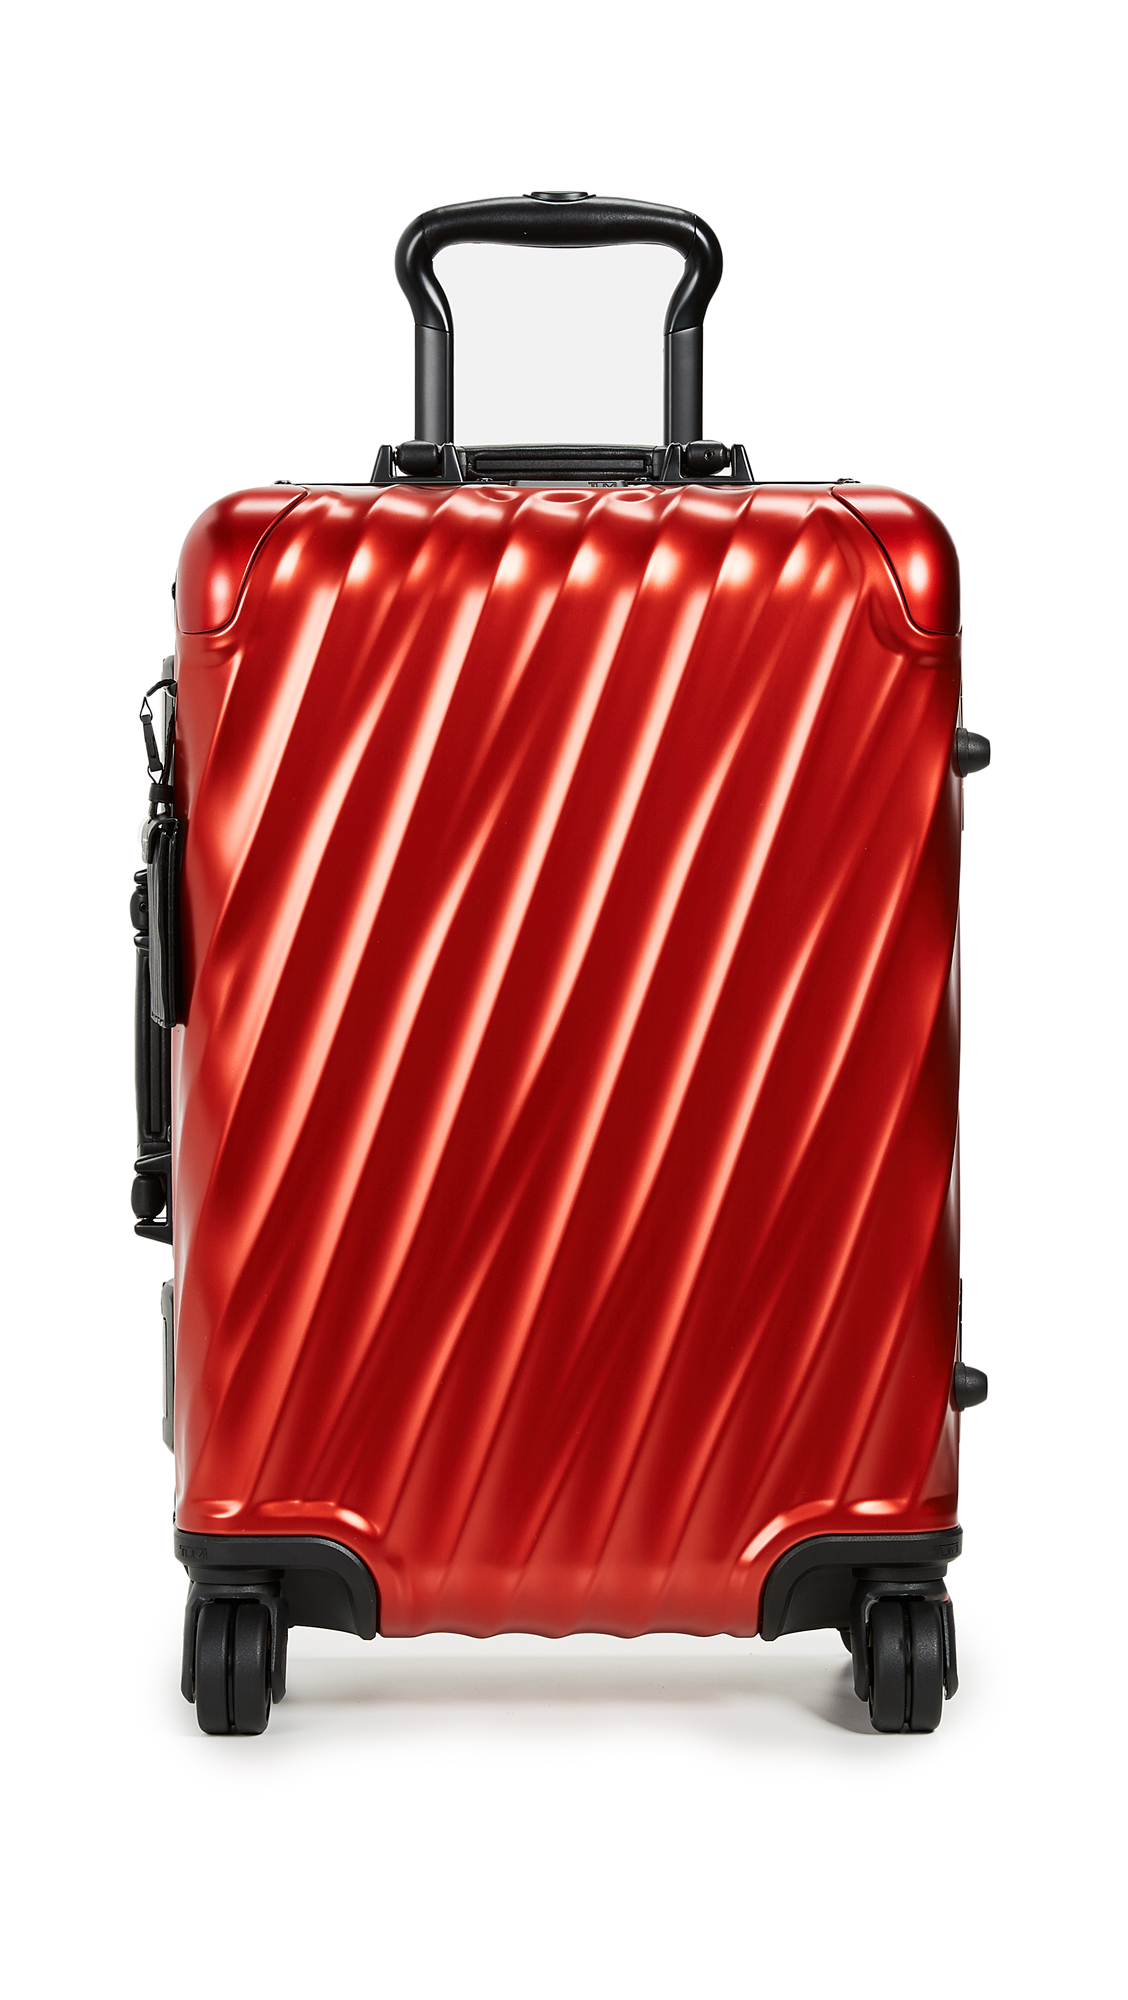 TUMI 19 DEGREE ALUMINIUM INTERNATIONAL CARRY ON SUITCASE